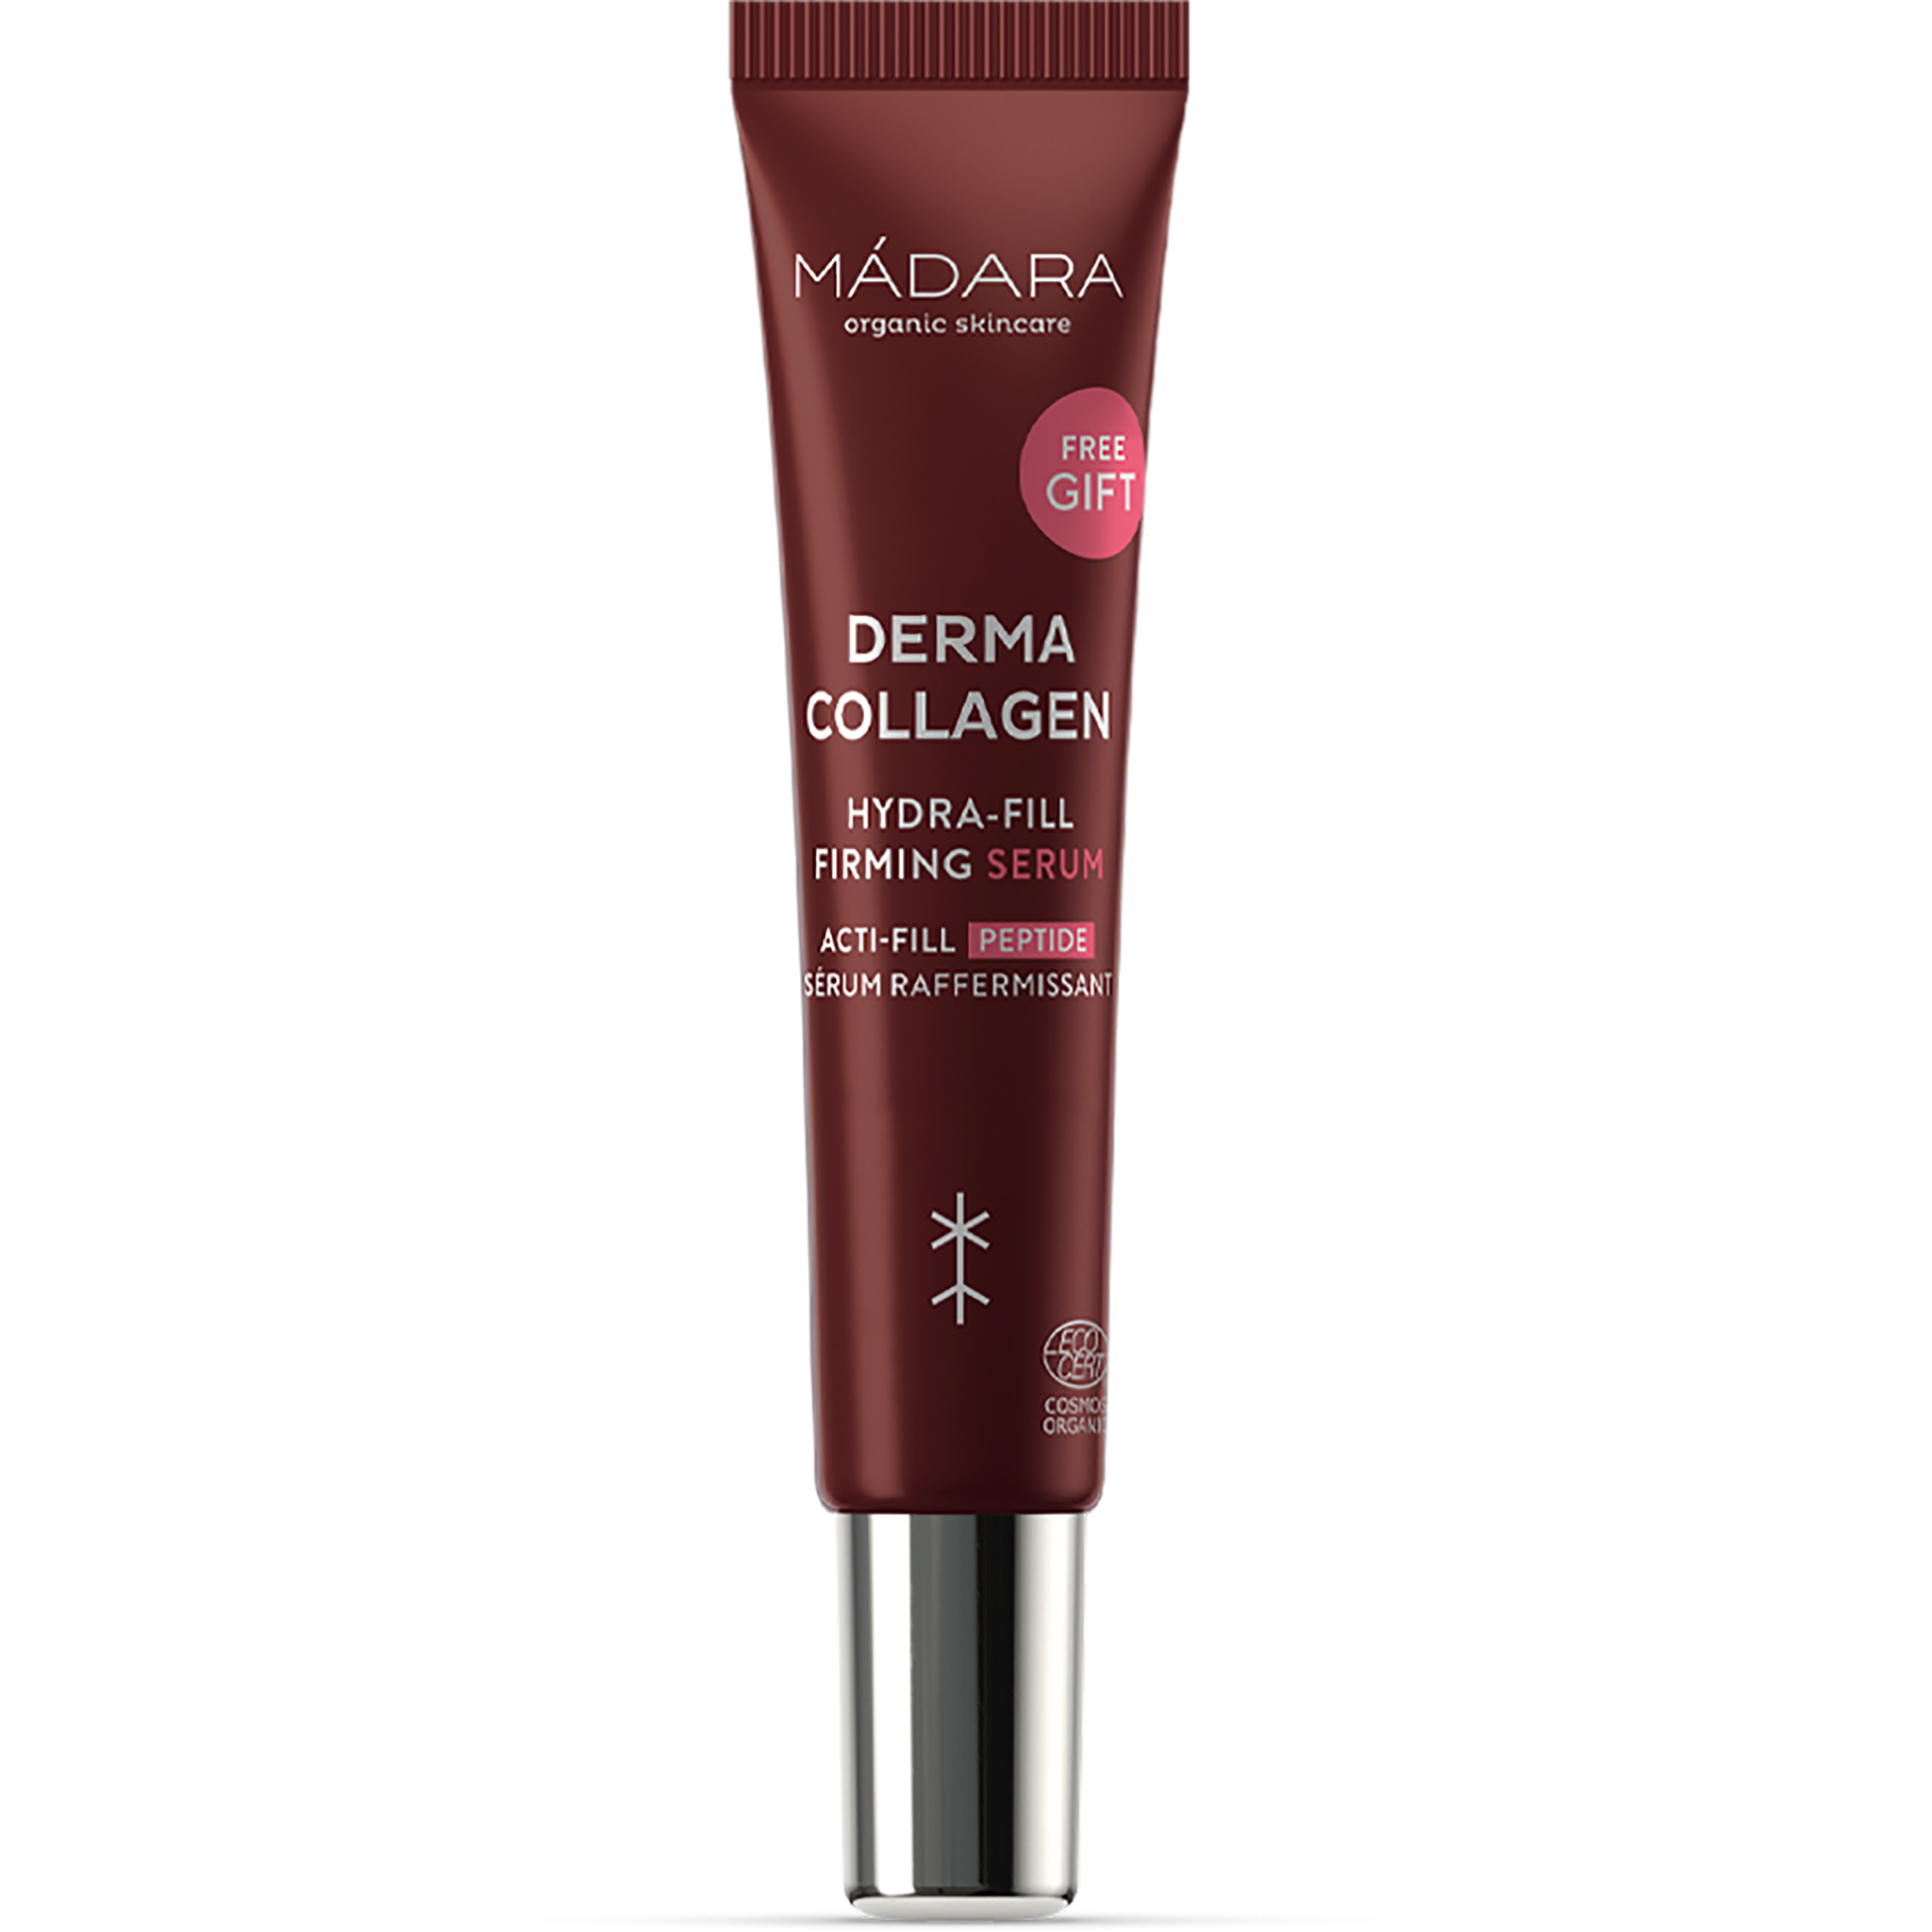 Derma Collagen Hydra-Silk Firming Serum 15ml - Free with £50 Spend